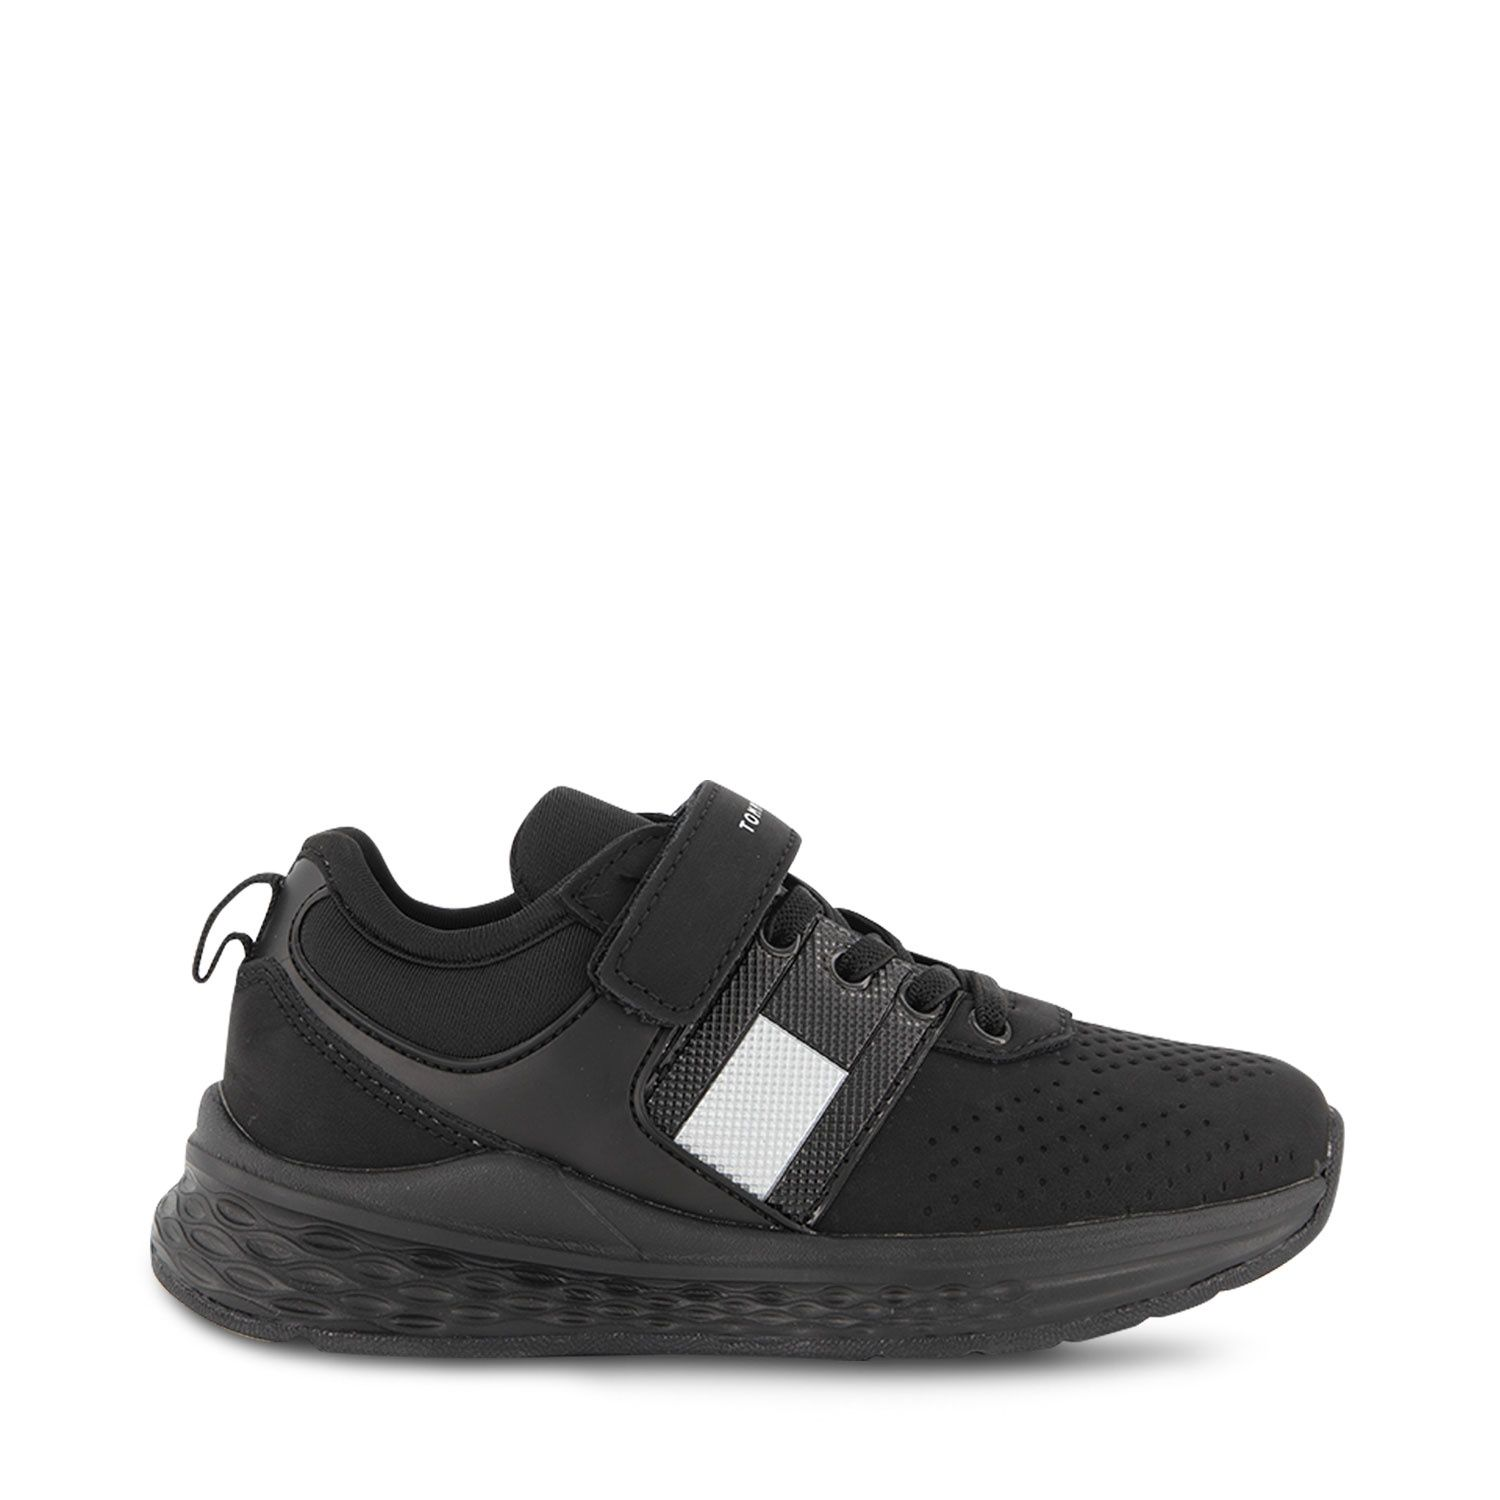 Picture of Tommy Hilfiger 32080 kids sneakers black